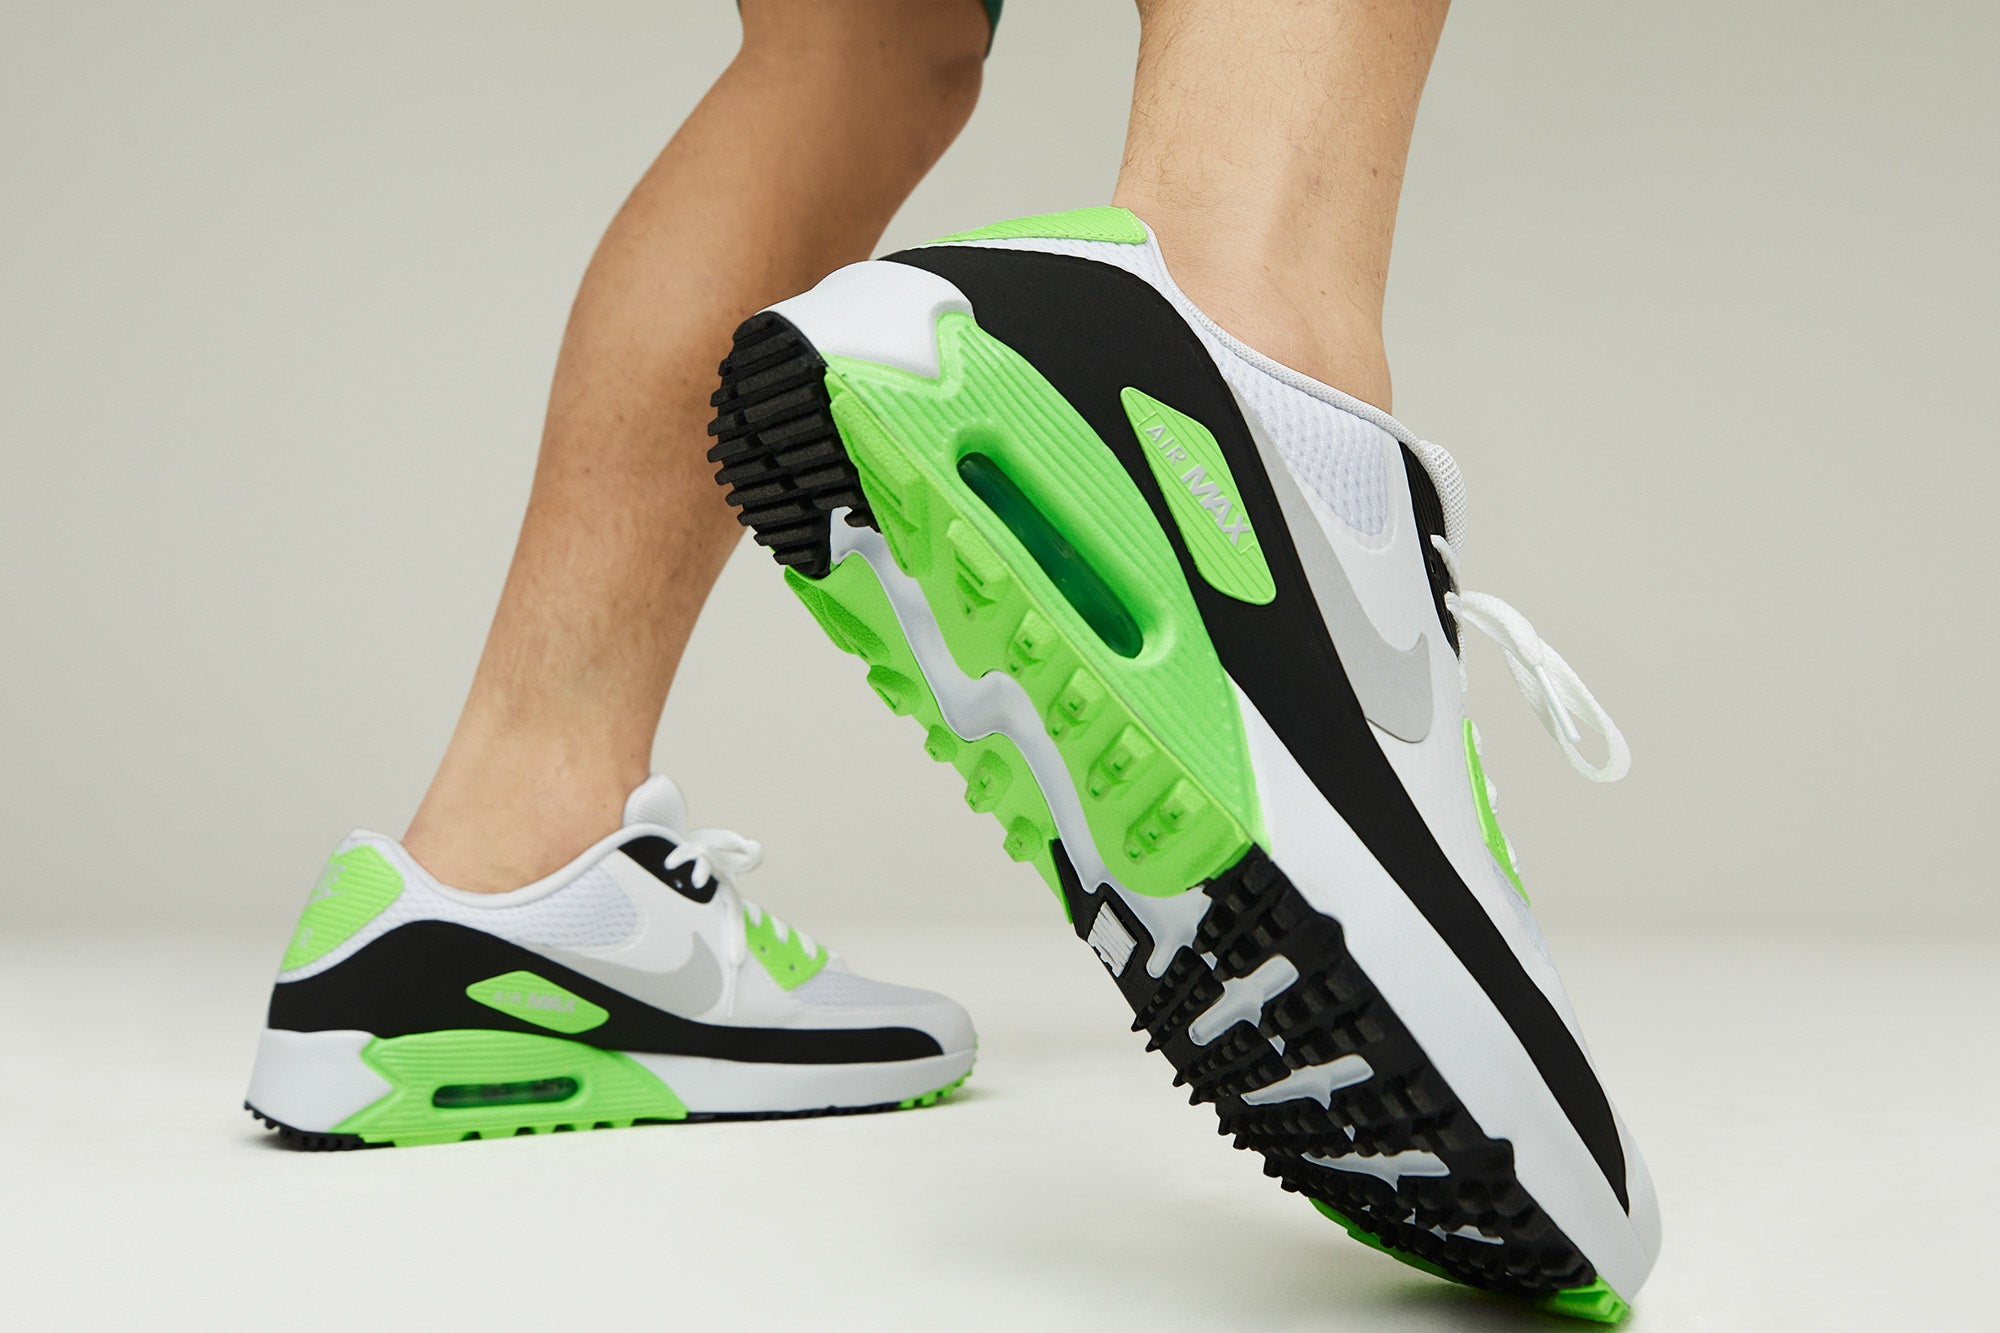 Nike Golf Air Max 90 G Shoes | Limited Edition NRG | Flash Lime ...